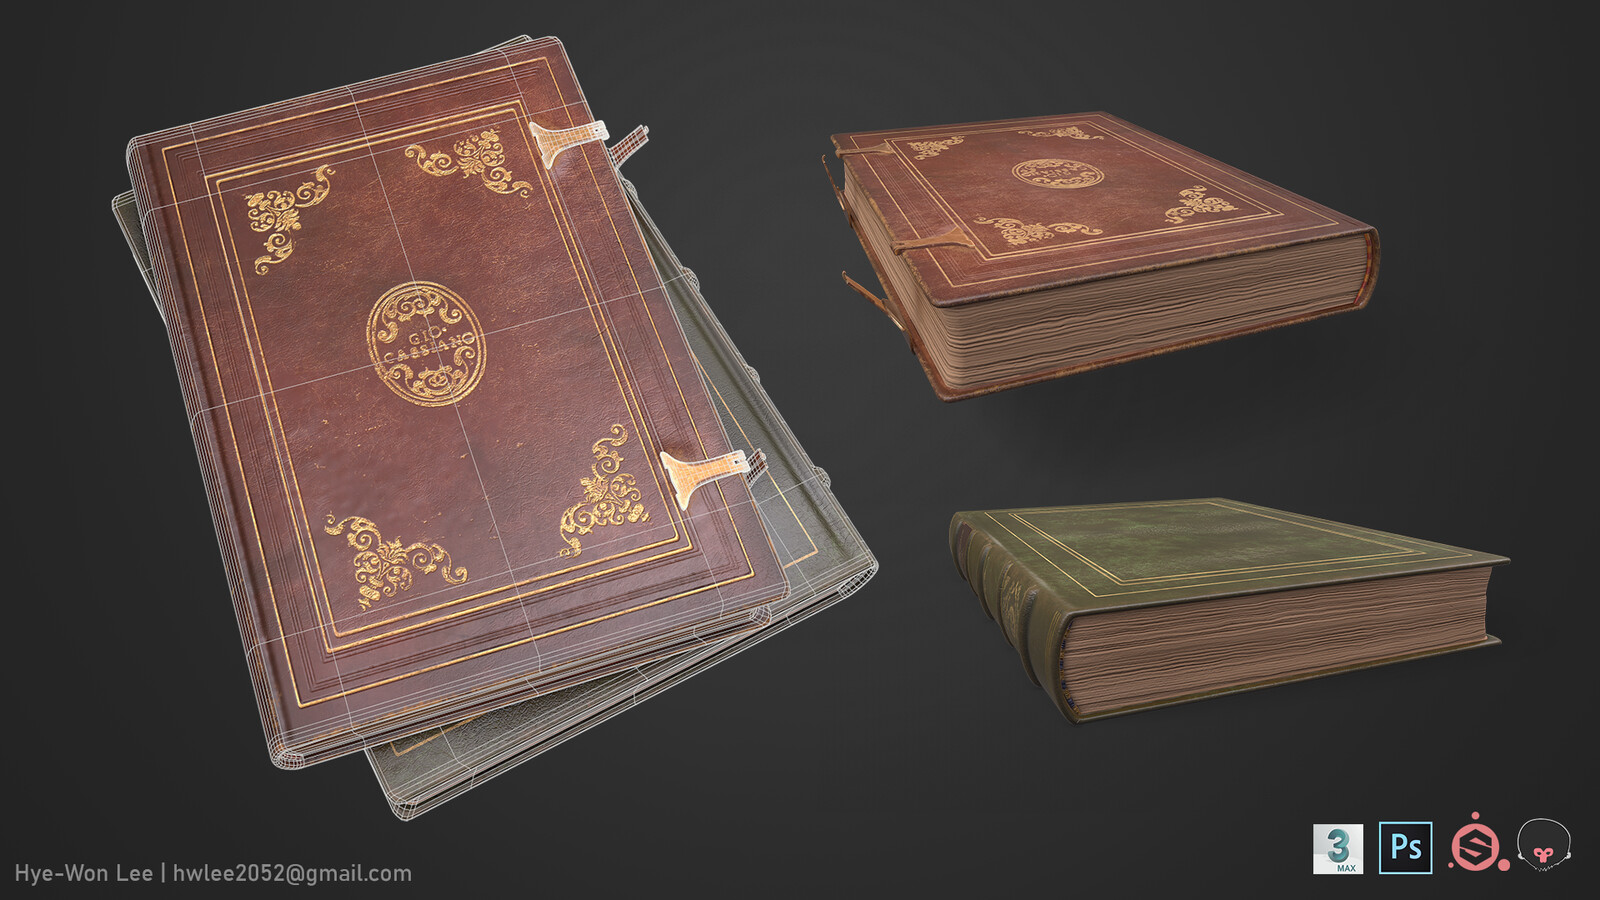 wireframe and separate books